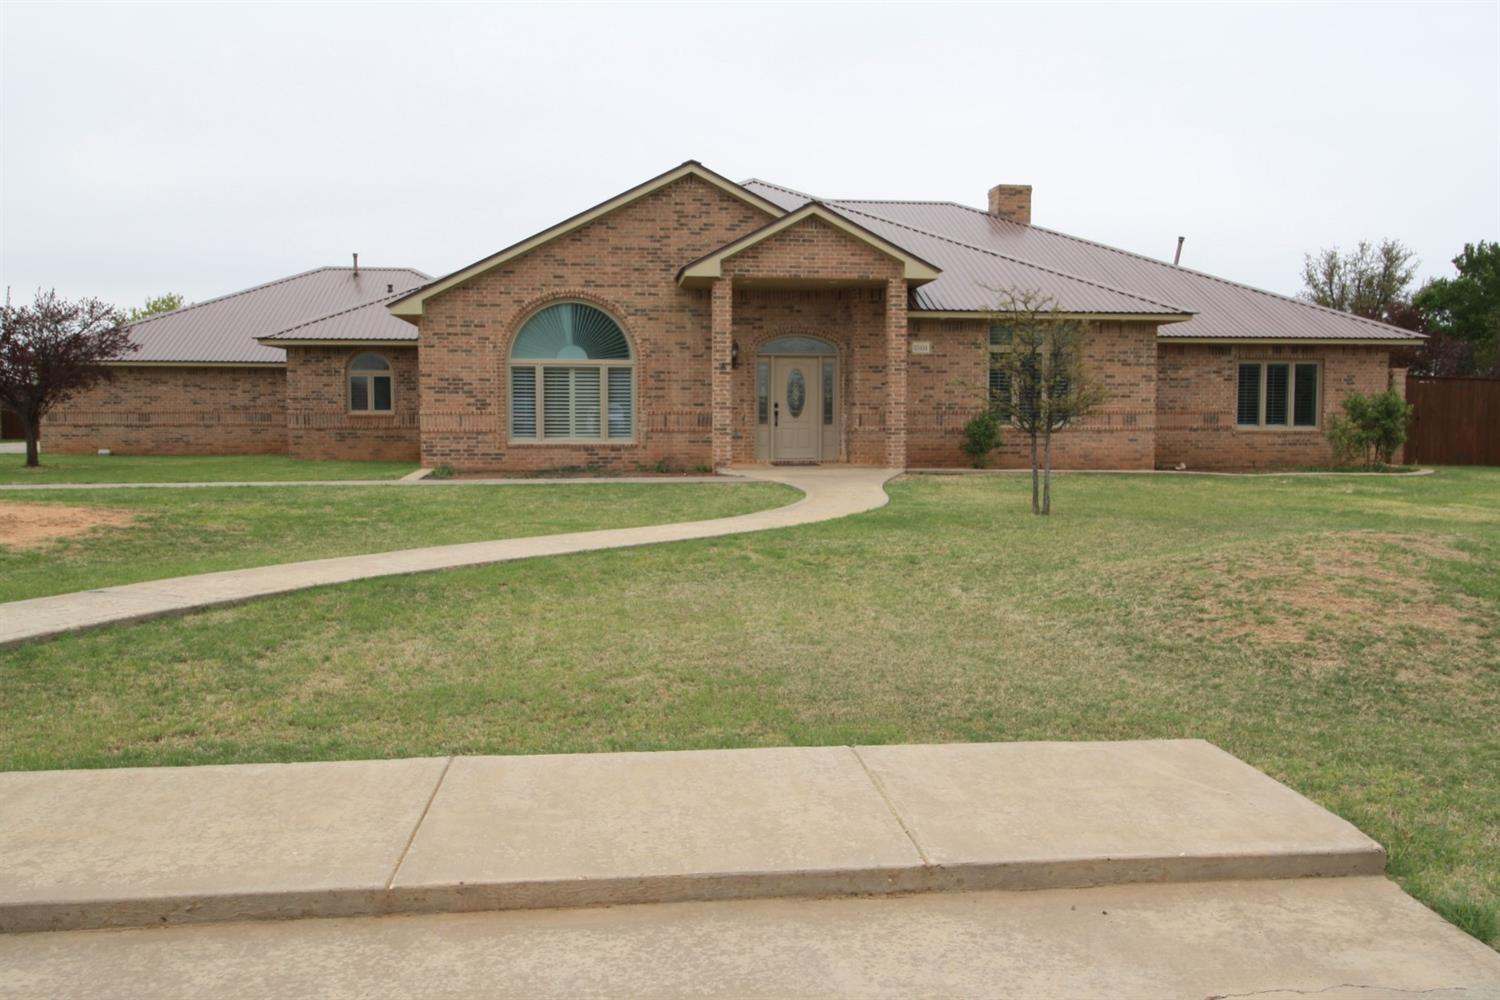 $67,000 BELOW recent appraisal!! This beautiful home in Highland Oaks is a steal ~ 4 Bedrooms ~ 3.5 Bathrooms ~ 3 Car Garage ~ .9 Acres ~ Office w/ Built-in's ~ Formal Dining Area ~ Bar w/ Kegerator & Wine Fridge ~ Large Kitchen w/ Gas Stove-top ~ Granite Counter-tops ~ Wine Rack ~ Huge Walk-in Pantry ~ Open Living Room With Plenty of Room For Family Gatherings ~ Isolated Master Suite ~ Spa Like Master Bath ~ Master Closet Wraps Around the  Tub ~ 3 Large Guest Bedrooms and 2 Additional Bathrooms ~ Basement Has Brick Walls & Storage ~ Utility Room Has More Storage Than You Know What to do With....Sink, 2 Walk-In Pantries & Room For Freezer ~ Walk Outside into the Gorgeous Oasis...Huge Covered Patio ~ Indoor/Outdoor Pool w/ Slide, Waterfall, Bar, & Bathroom!!  New Well!  Oh, And Did I Mention..INSTANT Equity!!